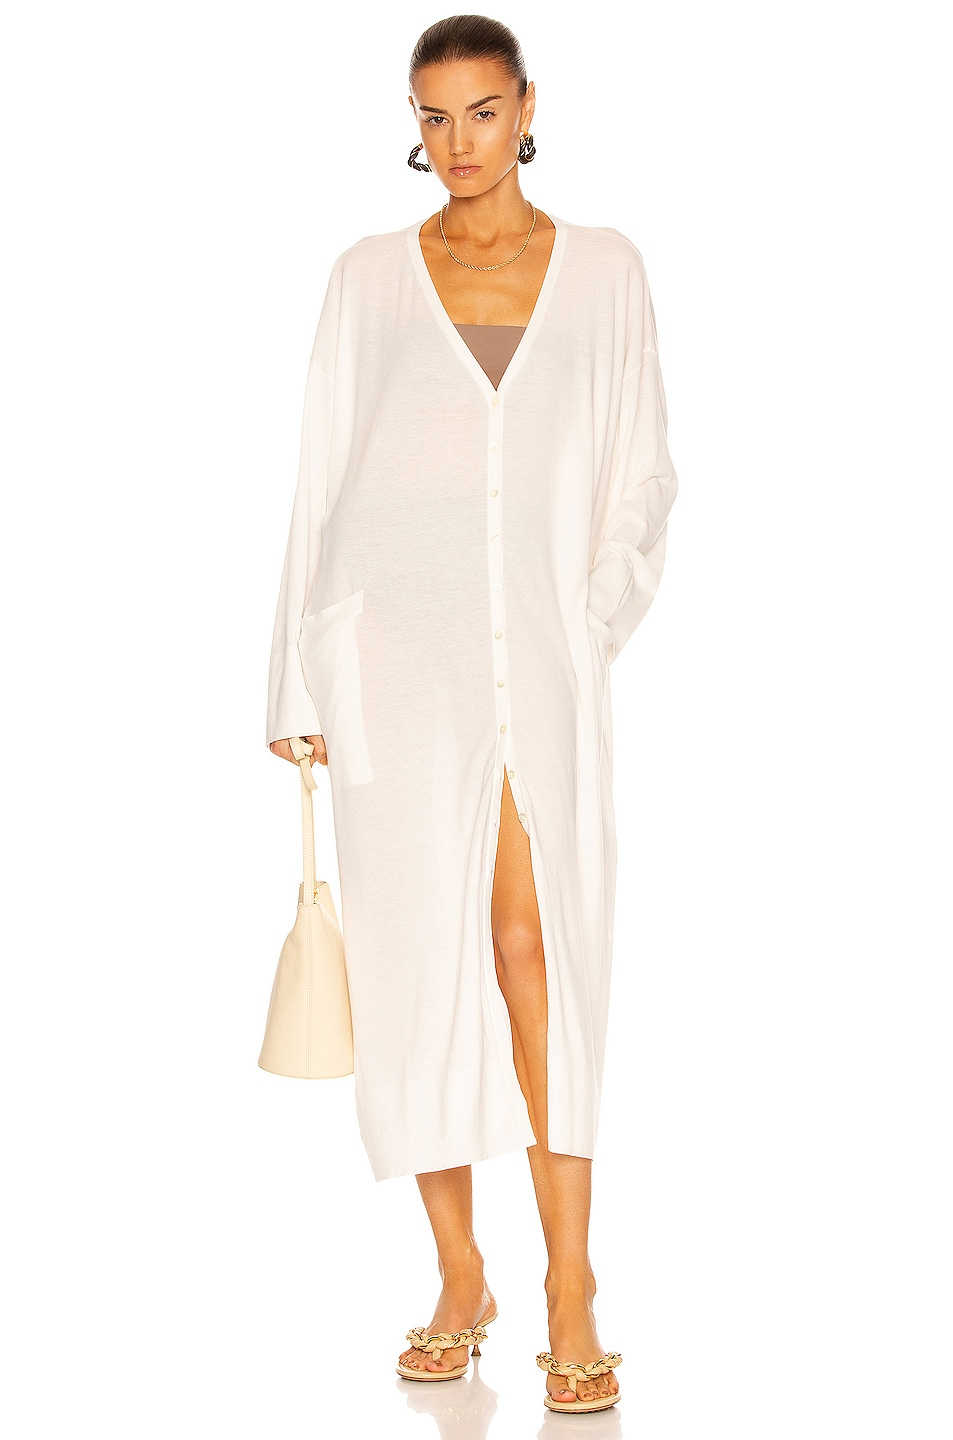 Image 1 of Toteme Fine Cotton Beach Dress in Ivory